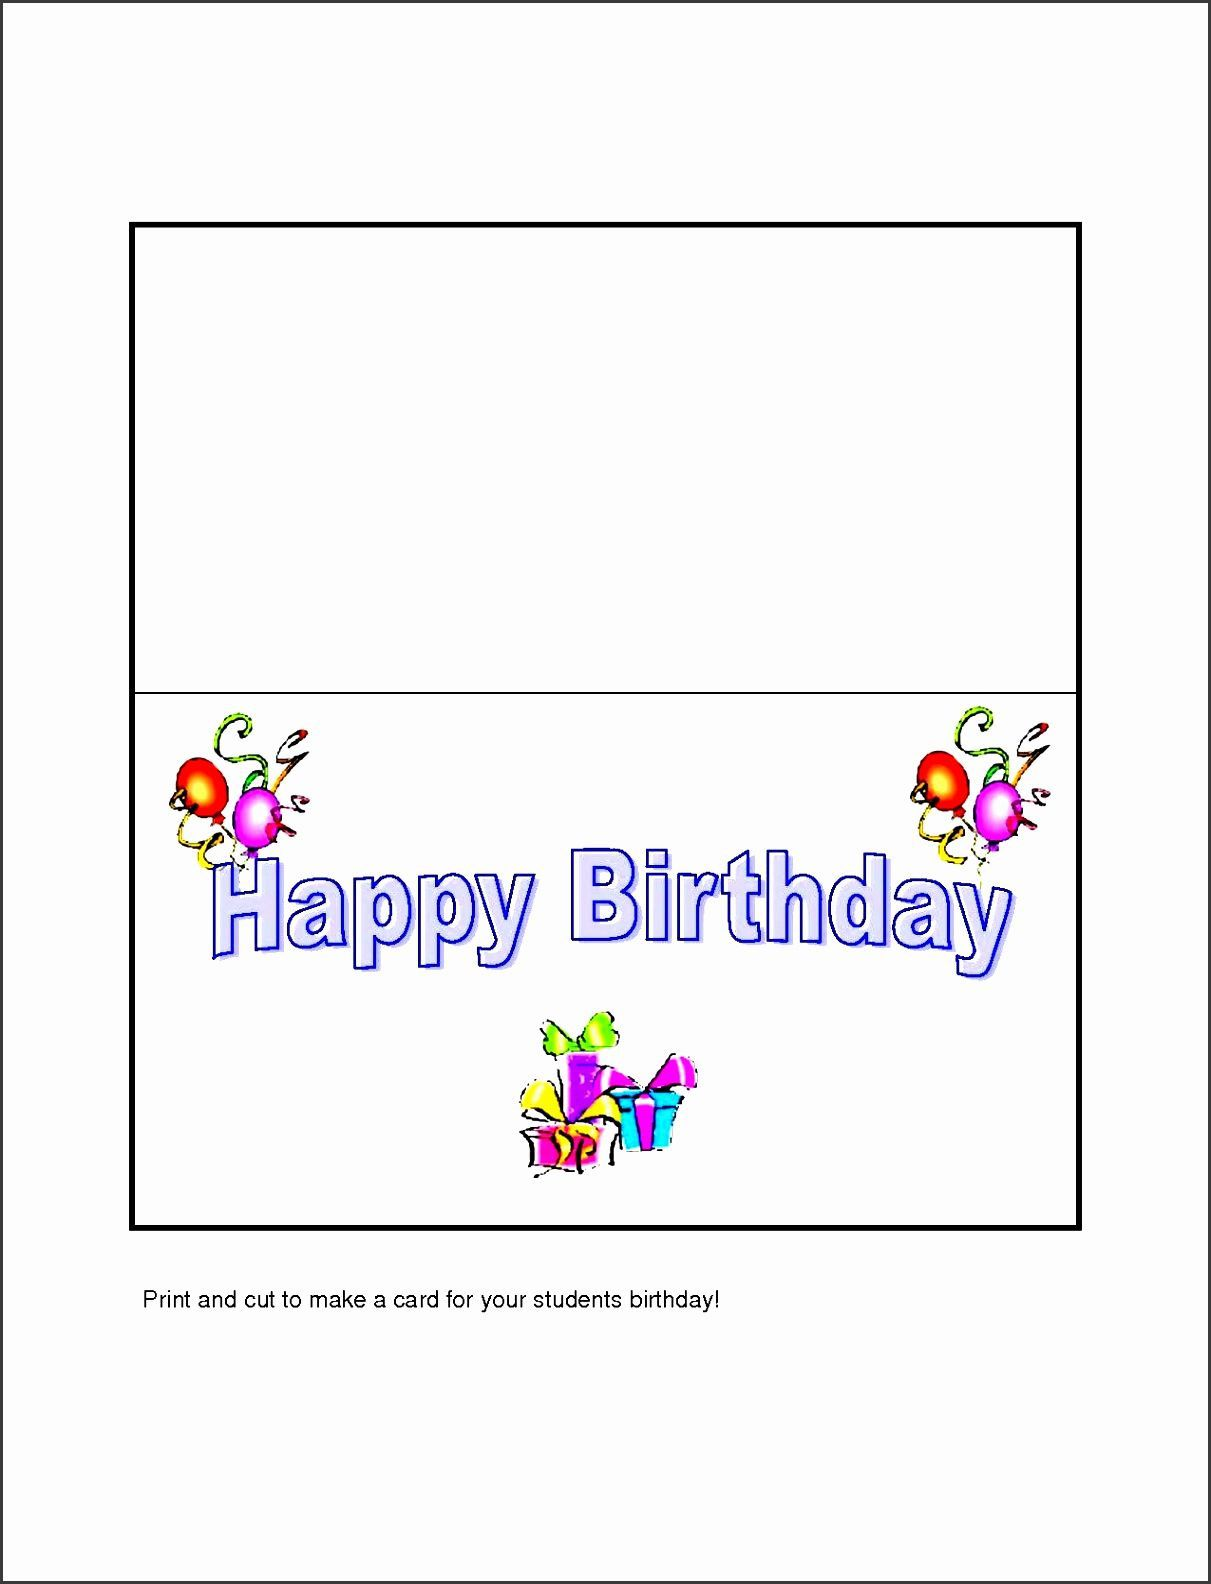 004 Frightening Birthday Card Template Word Highest Clarity  Blank Greeting Microsoft 2010Full